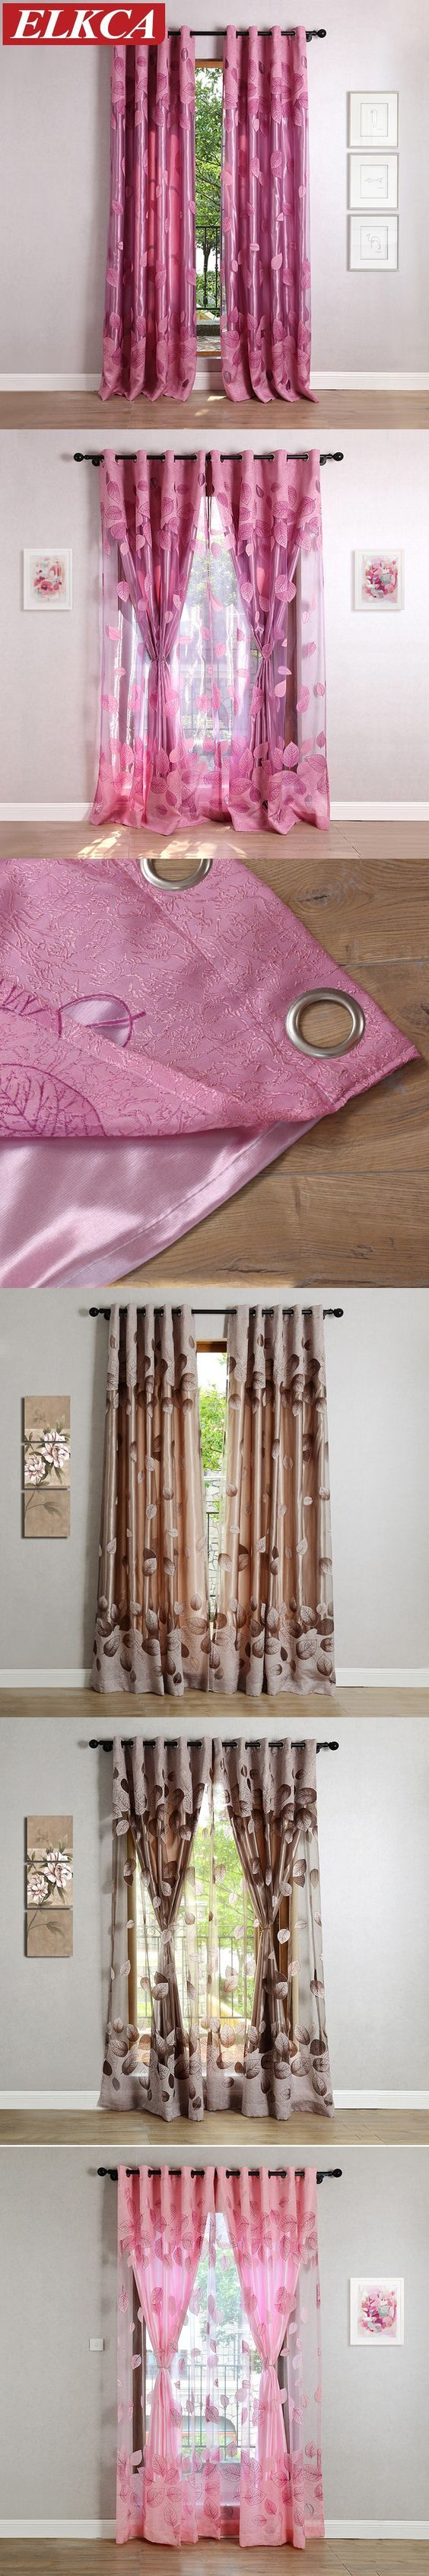 2 Layers Leaves Burnout Purple Tulle Curtains for Living Room Luxury Window Curtains for the Bedroom Kitchen Modern Curtains $48